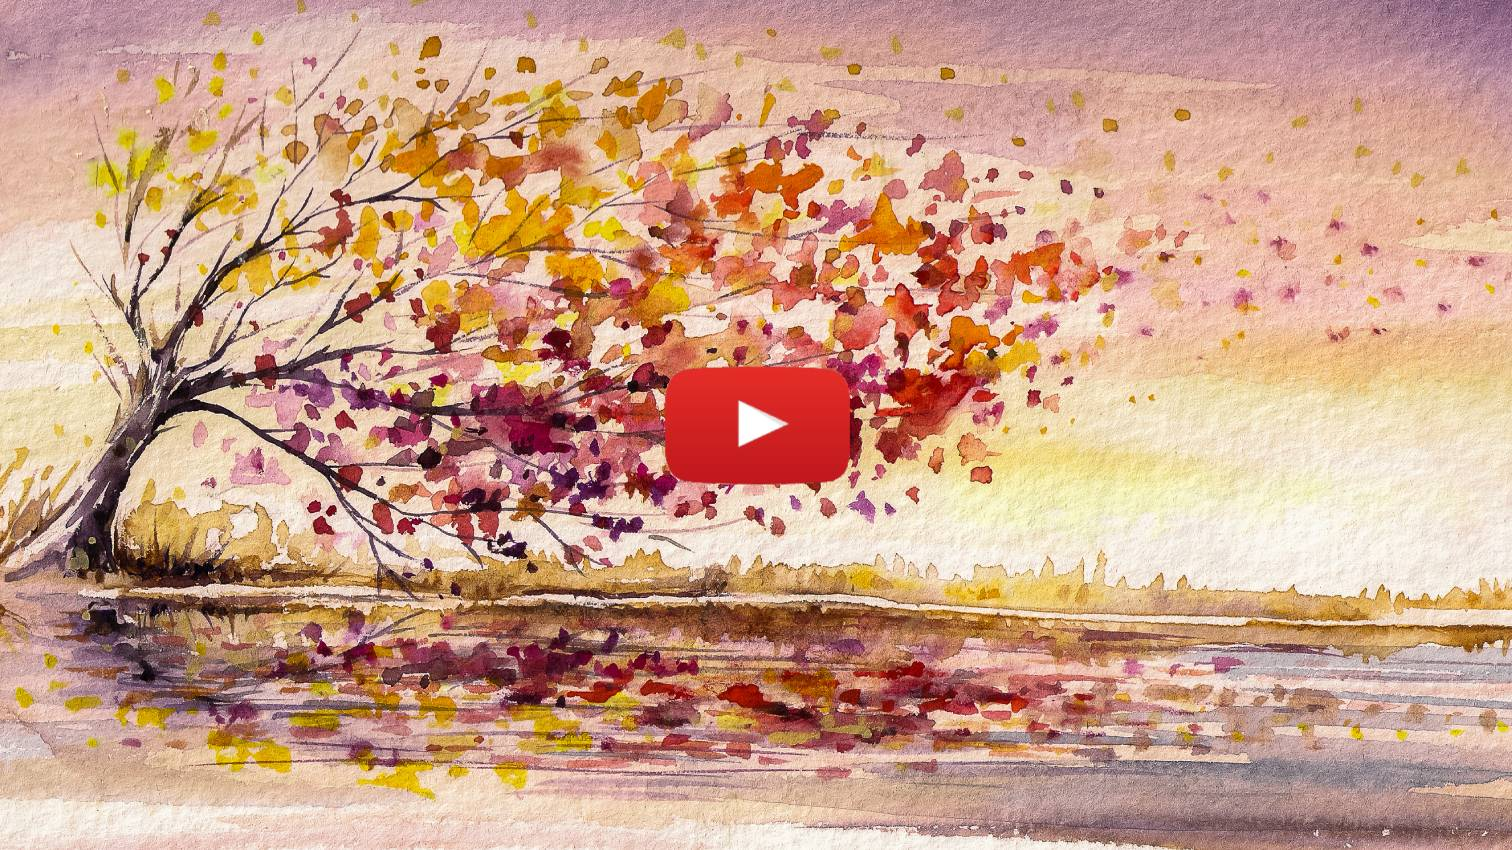 Catch the Wind - Parshat Noach